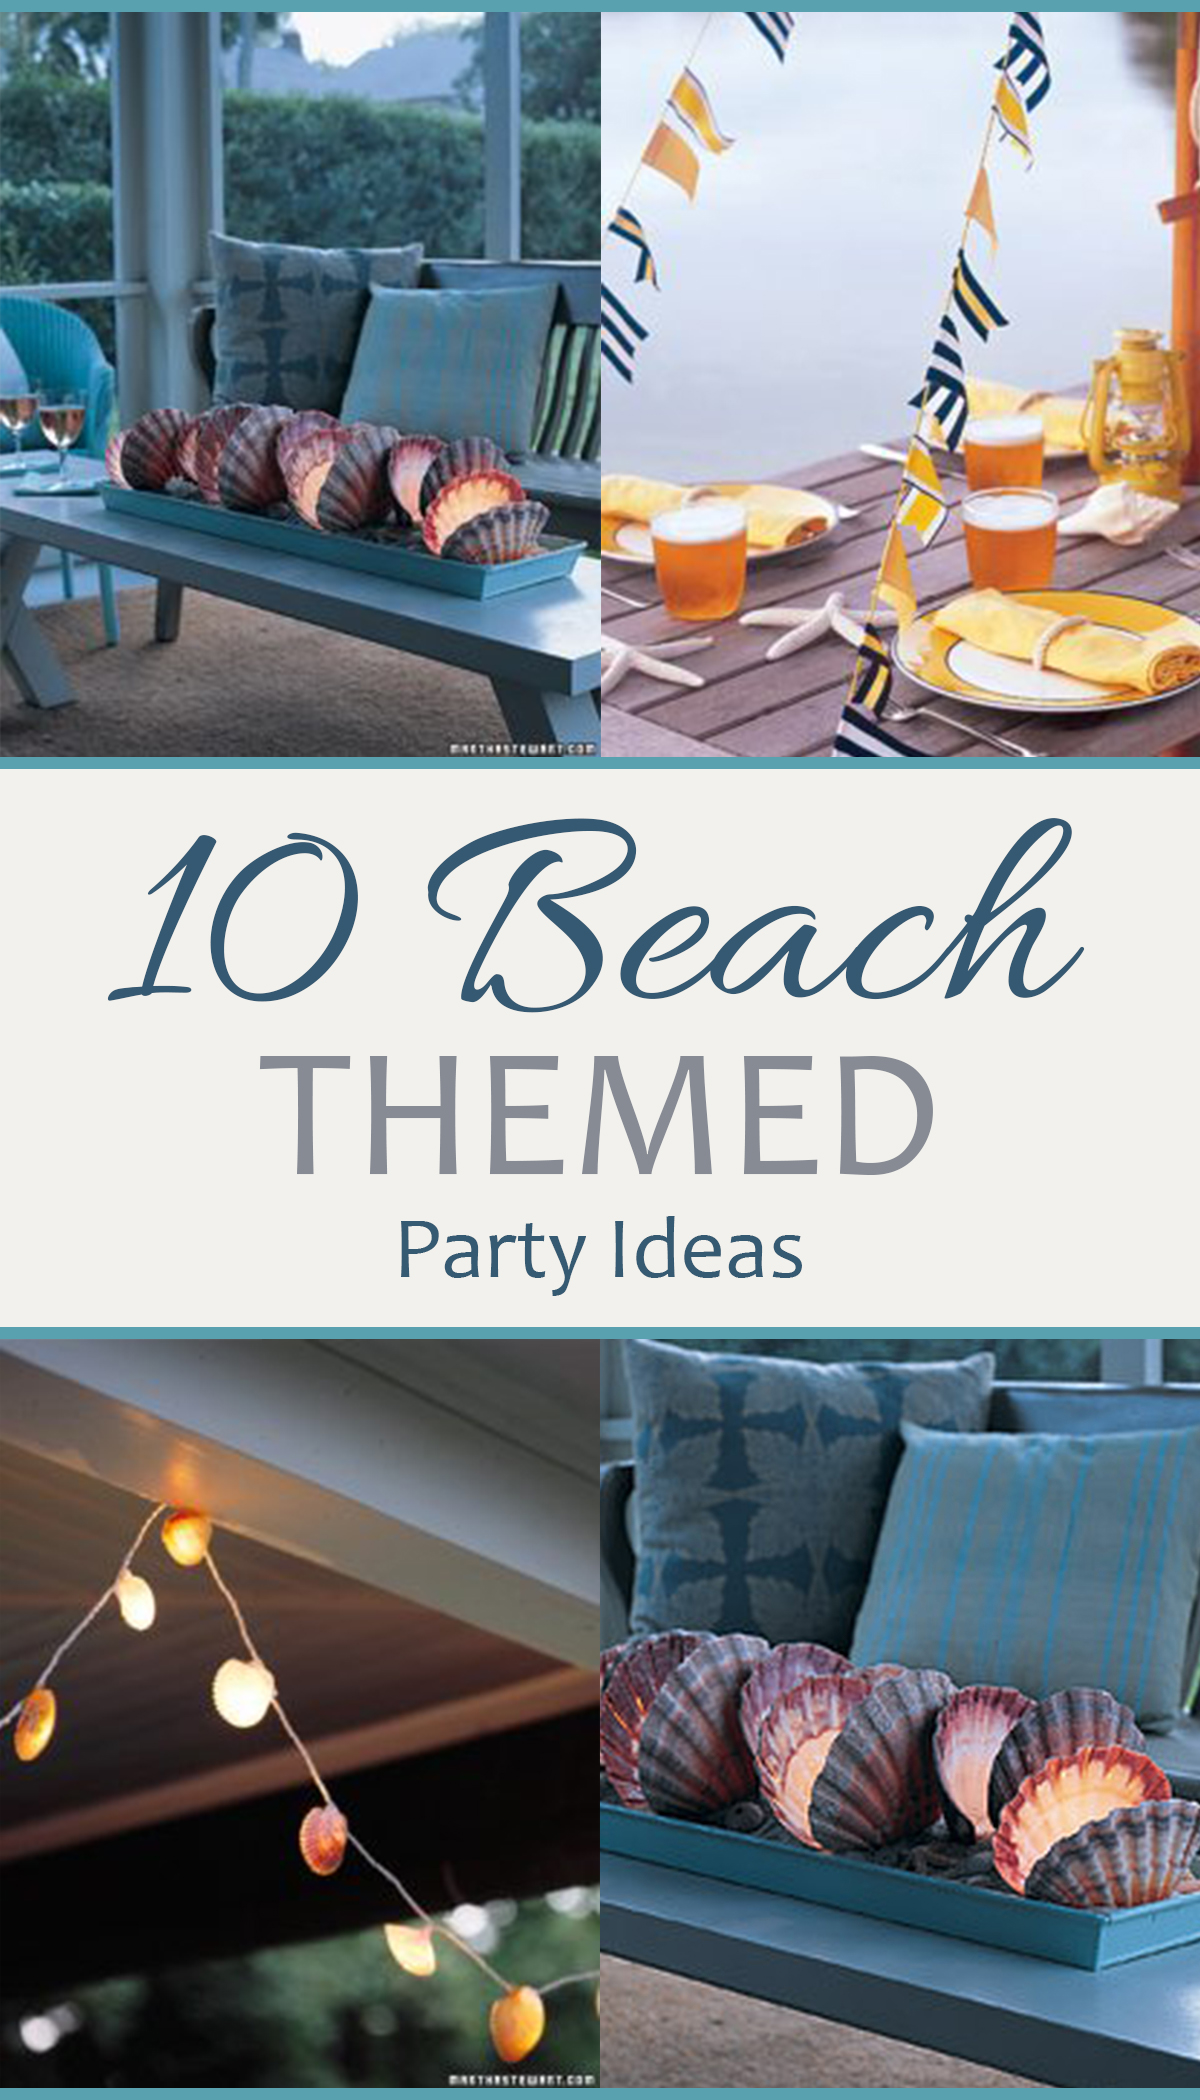 Beach Themed Party Ideas, Beach Party Ideas, Coastal Parties, Outdoor Party Tips and Tricks, How to Throw a Party, Party Hacks, Party Decor Ideas, Popular Pin